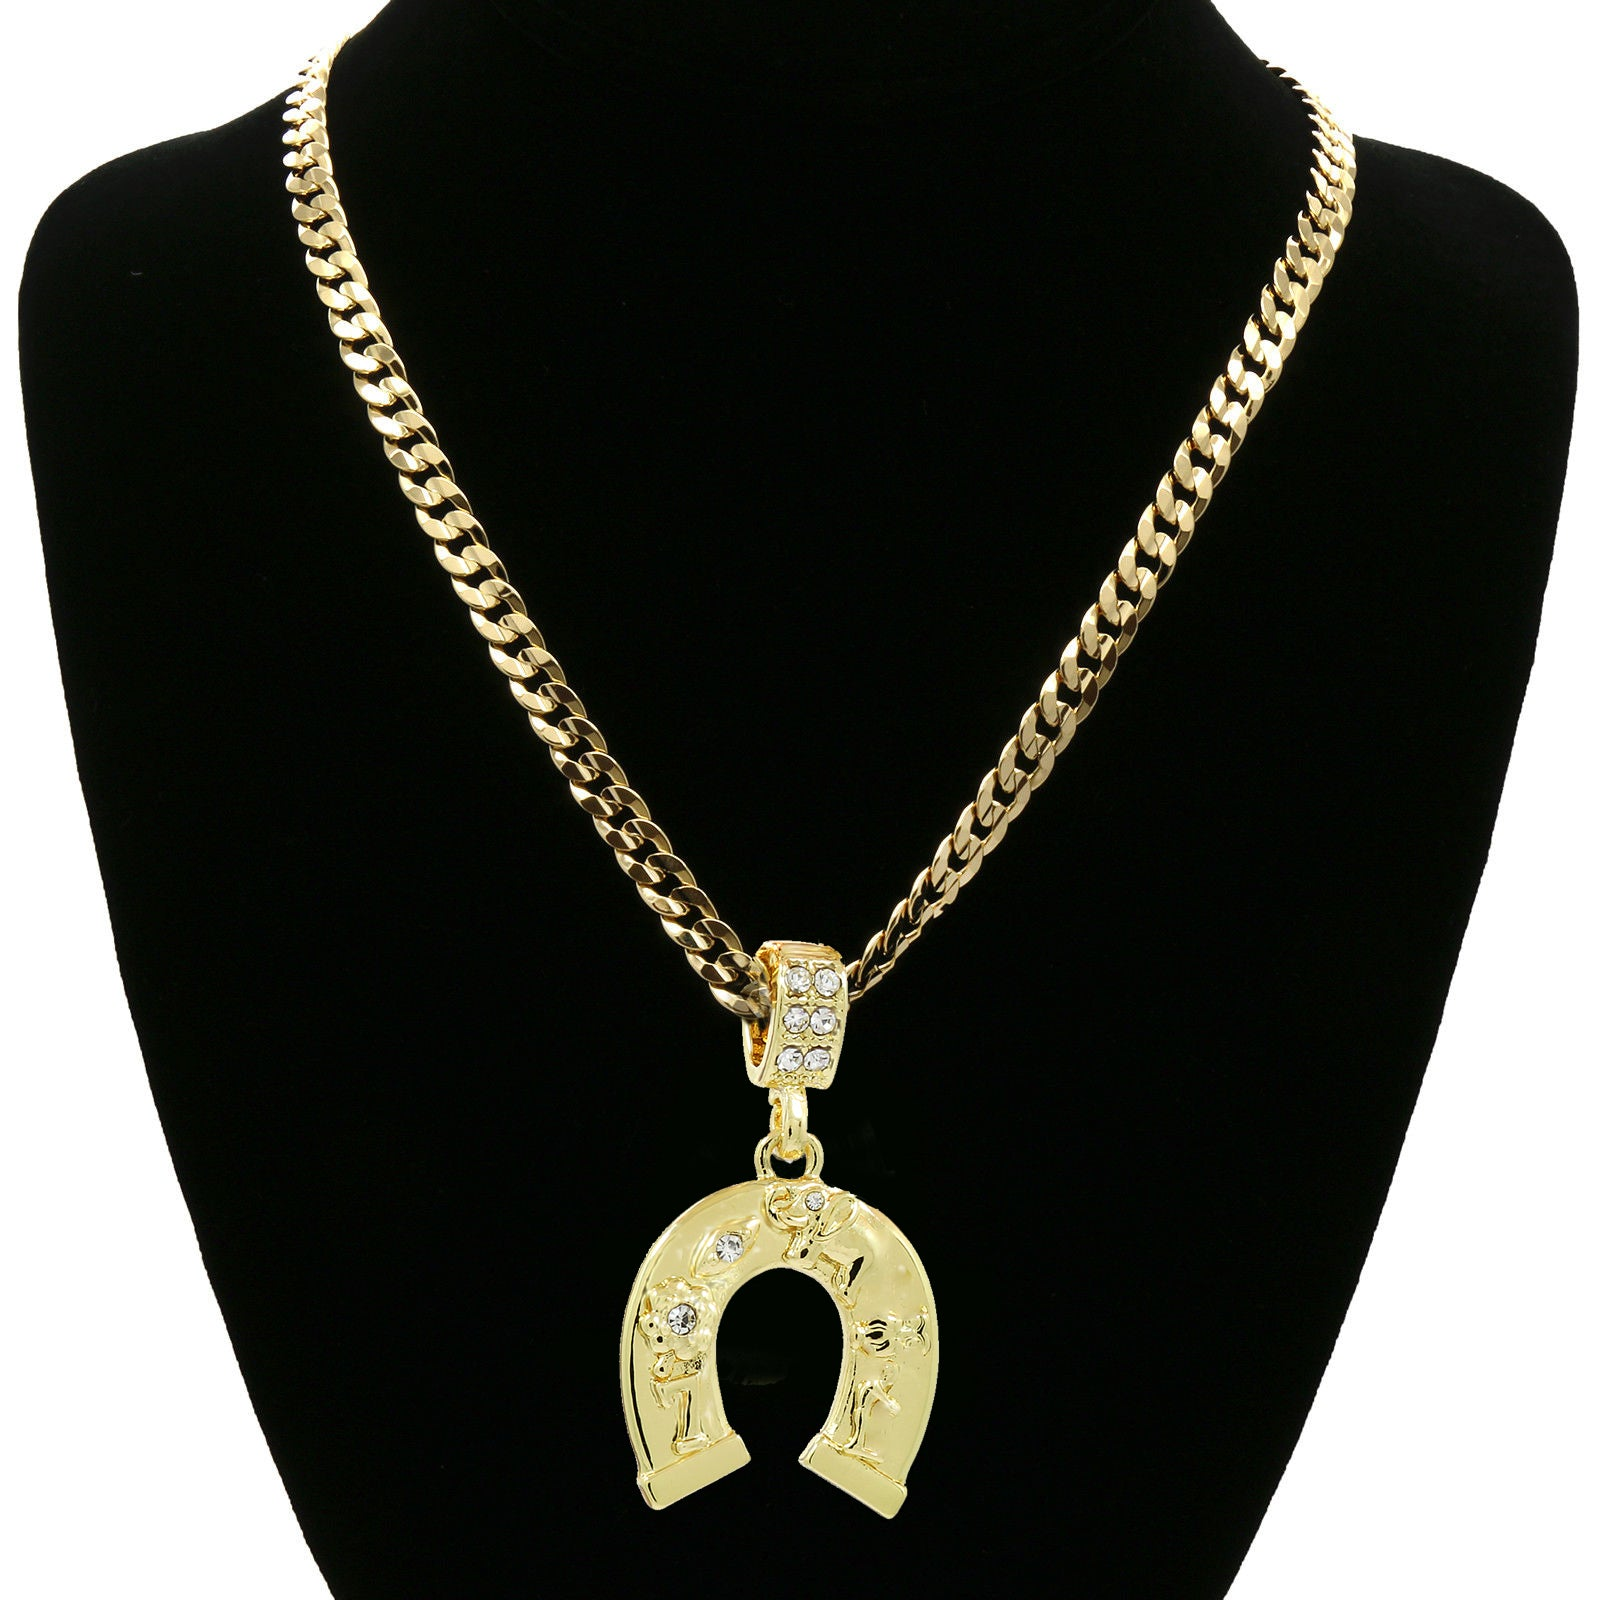 The Horse Shoe Necklace